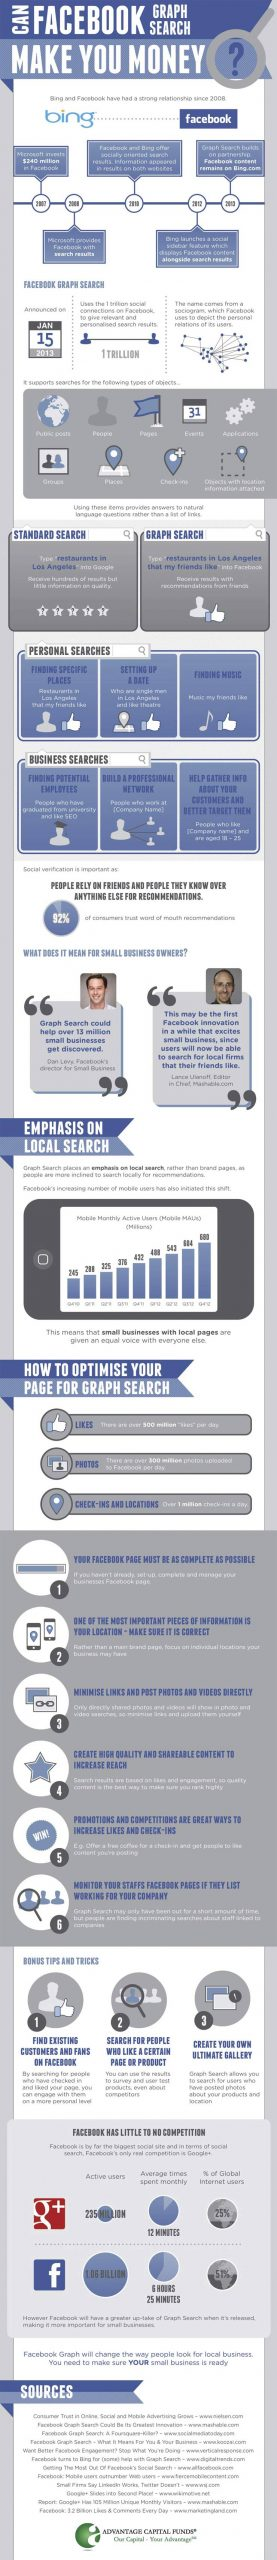 Can Facebook Graph Search Help Your Church? [Infographic]